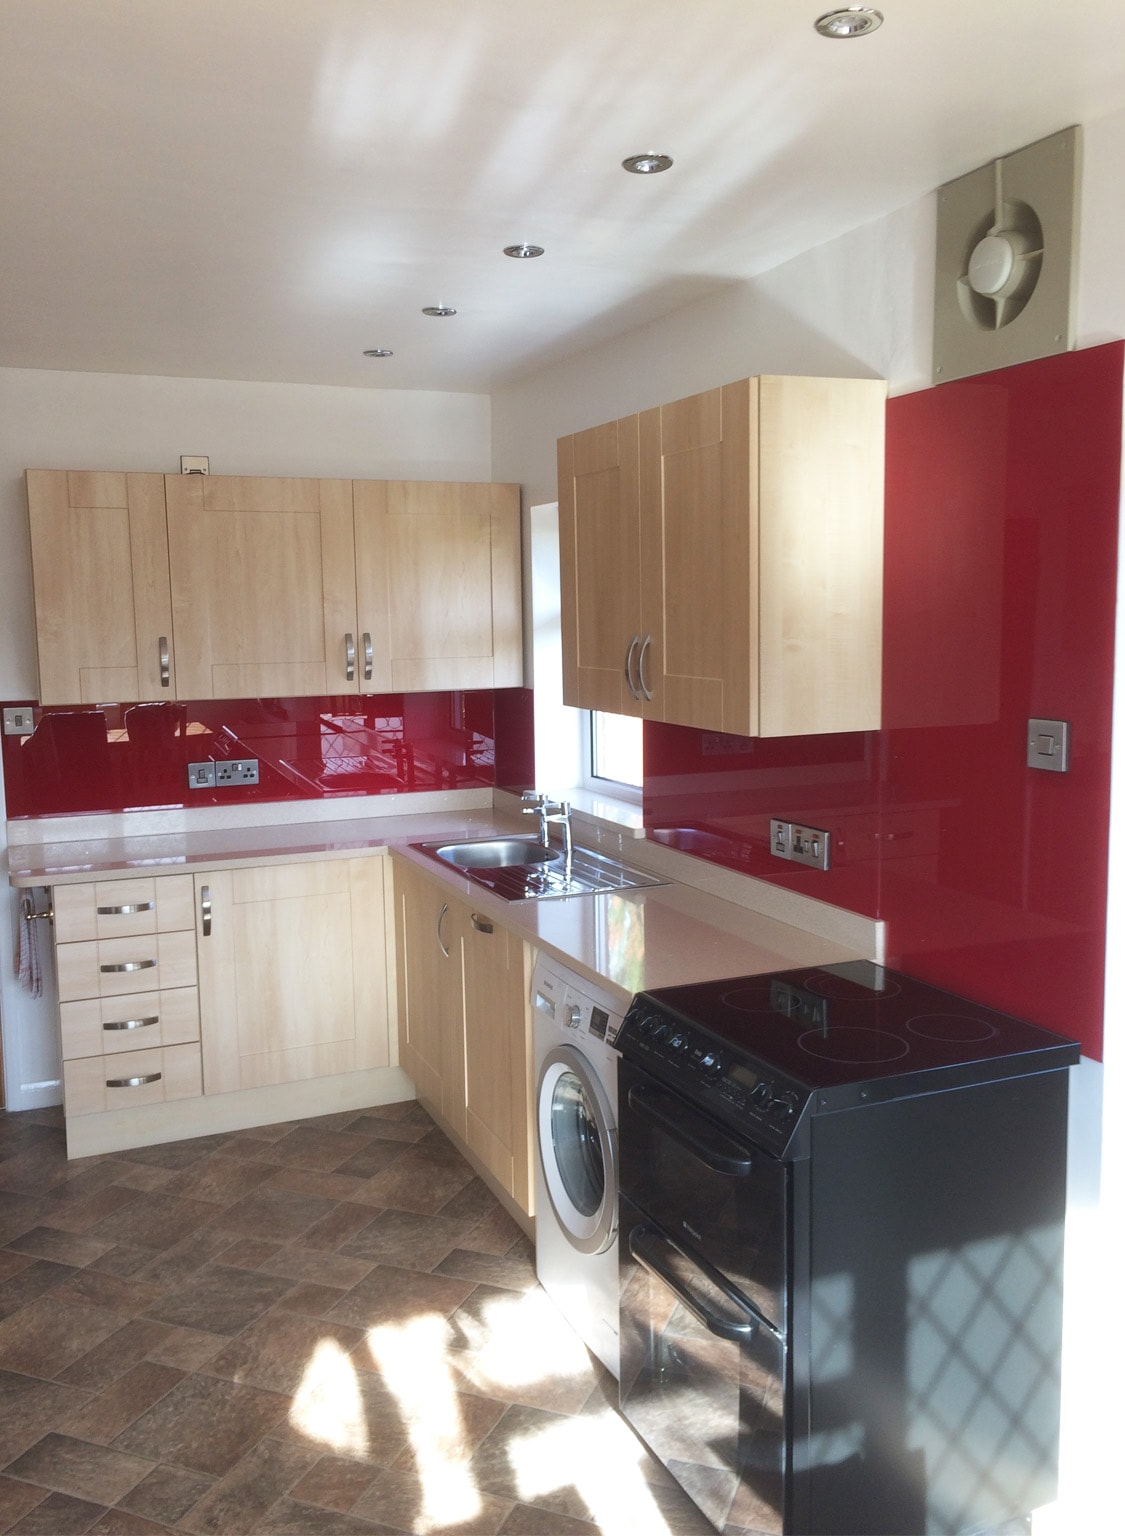 Kitchen glass splashback fitted ib marble wortop in for Red fitted kitchen